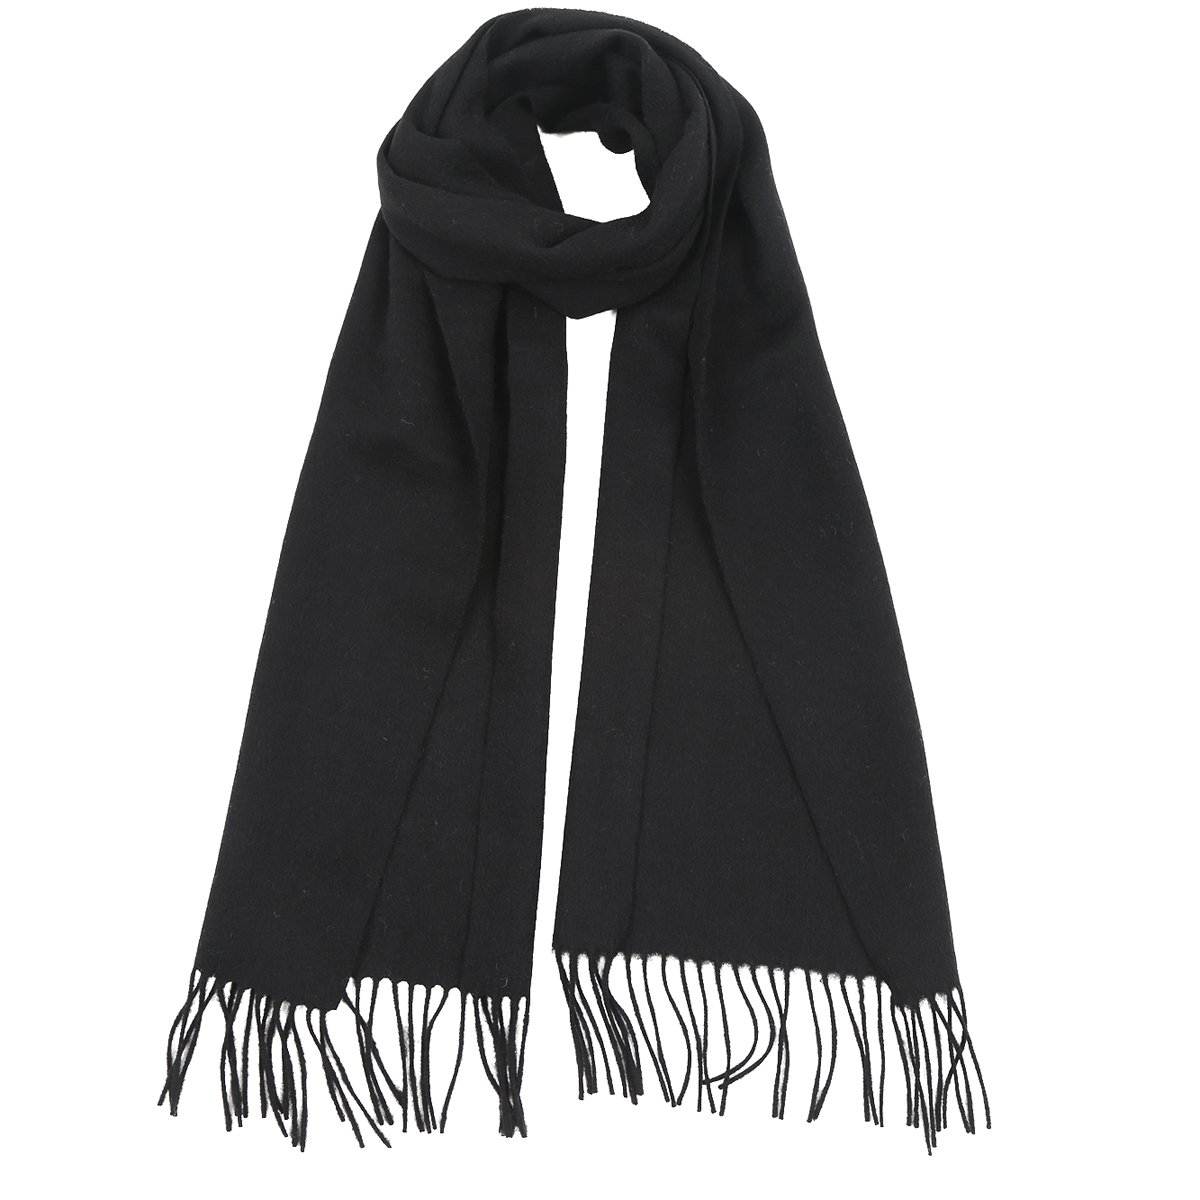 Cashmere Scarf for Women and Men(Black)